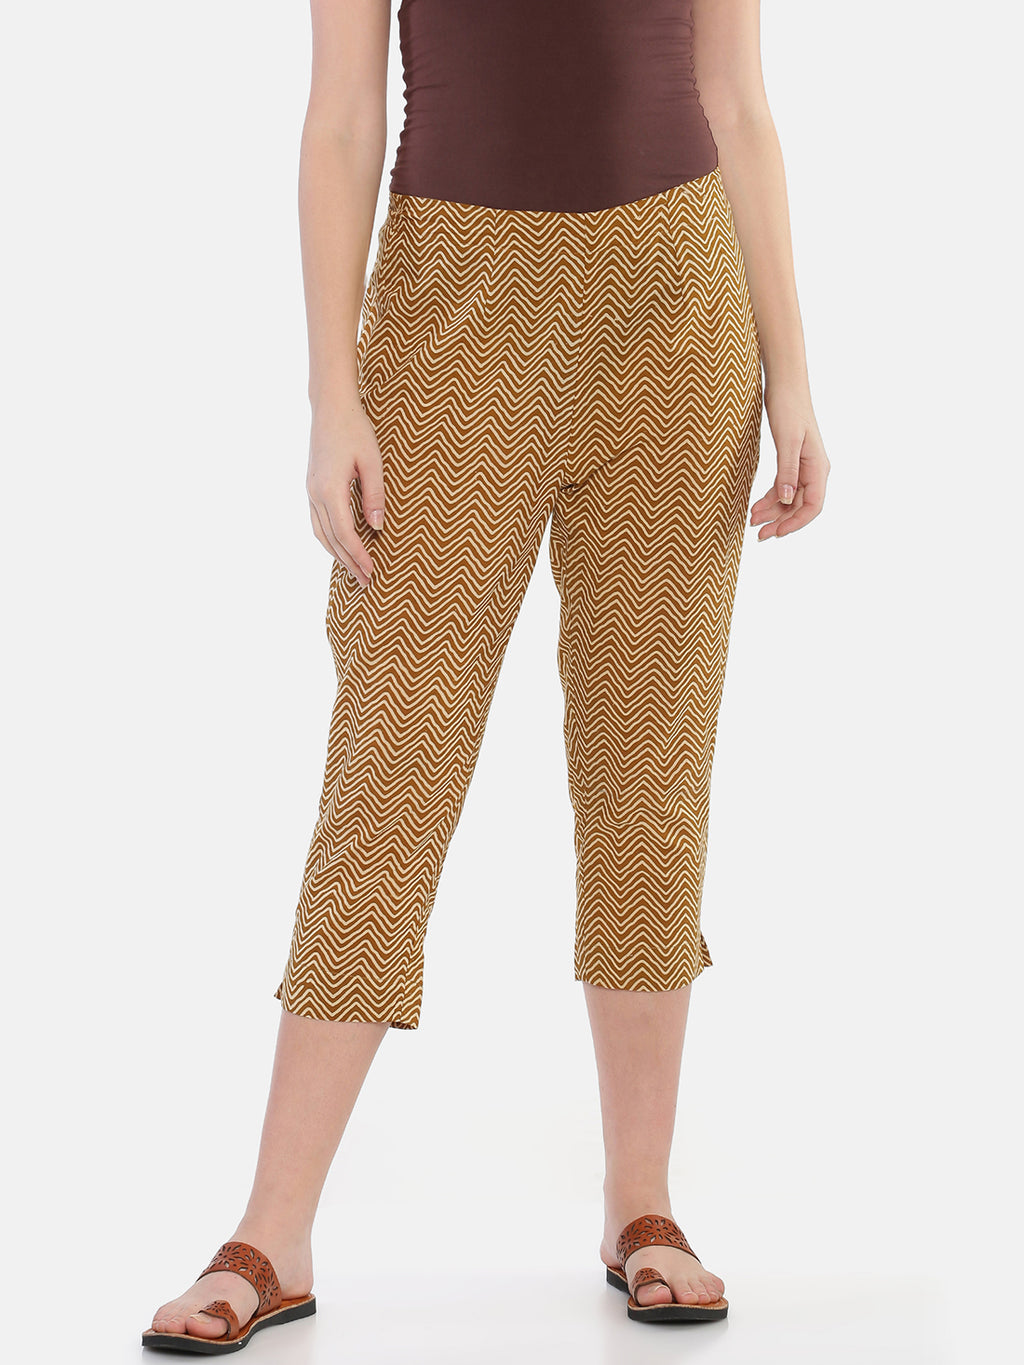 Mustard Naturally Dyed Cotton Chevron Hand Block Printed Cropped Cigarette Pants